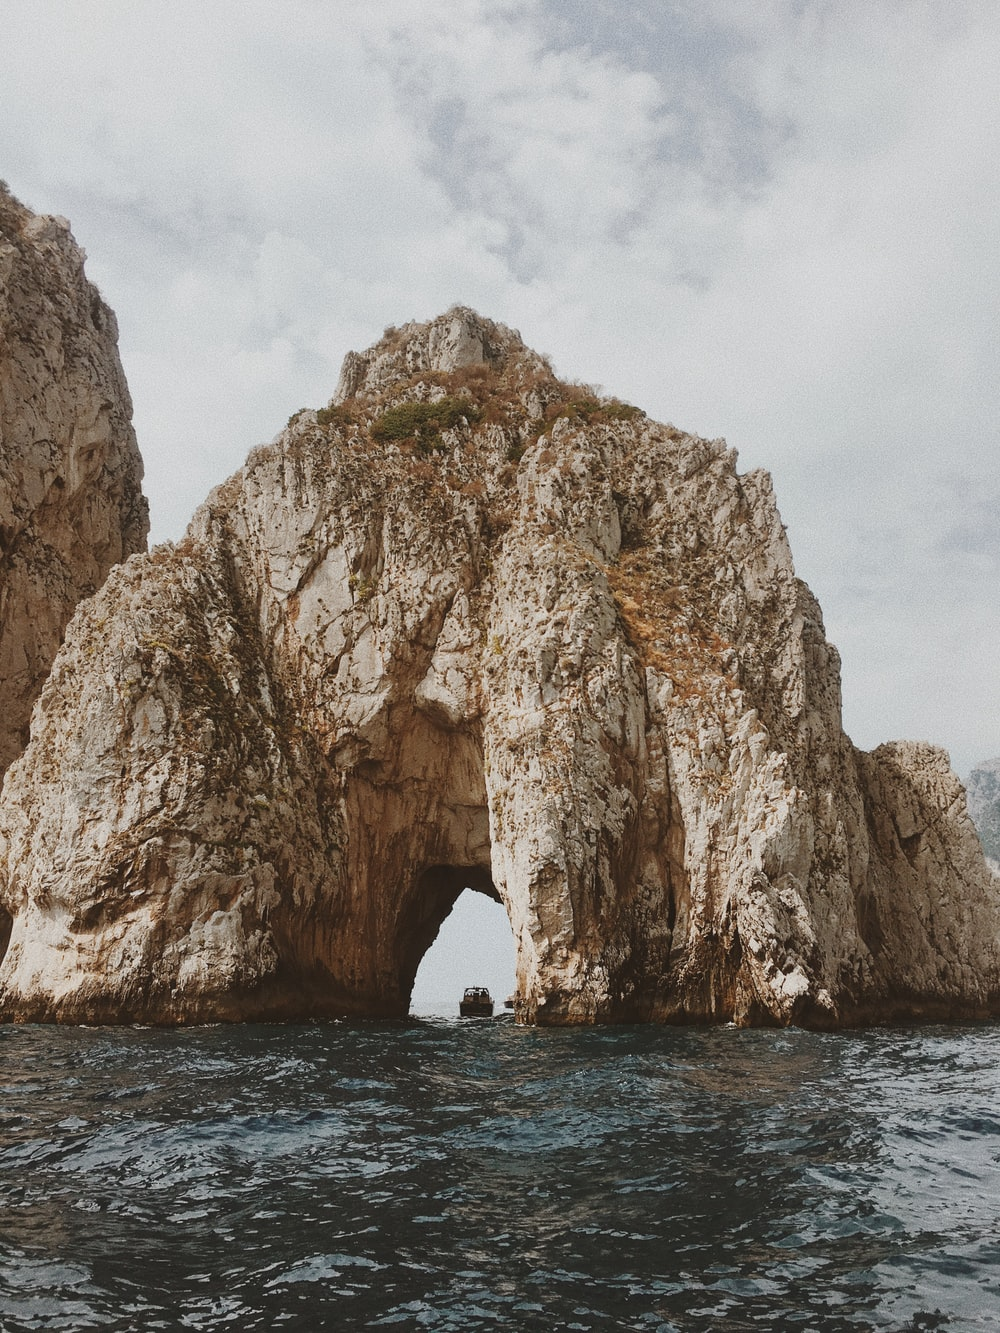 brown arched-shaped cliff